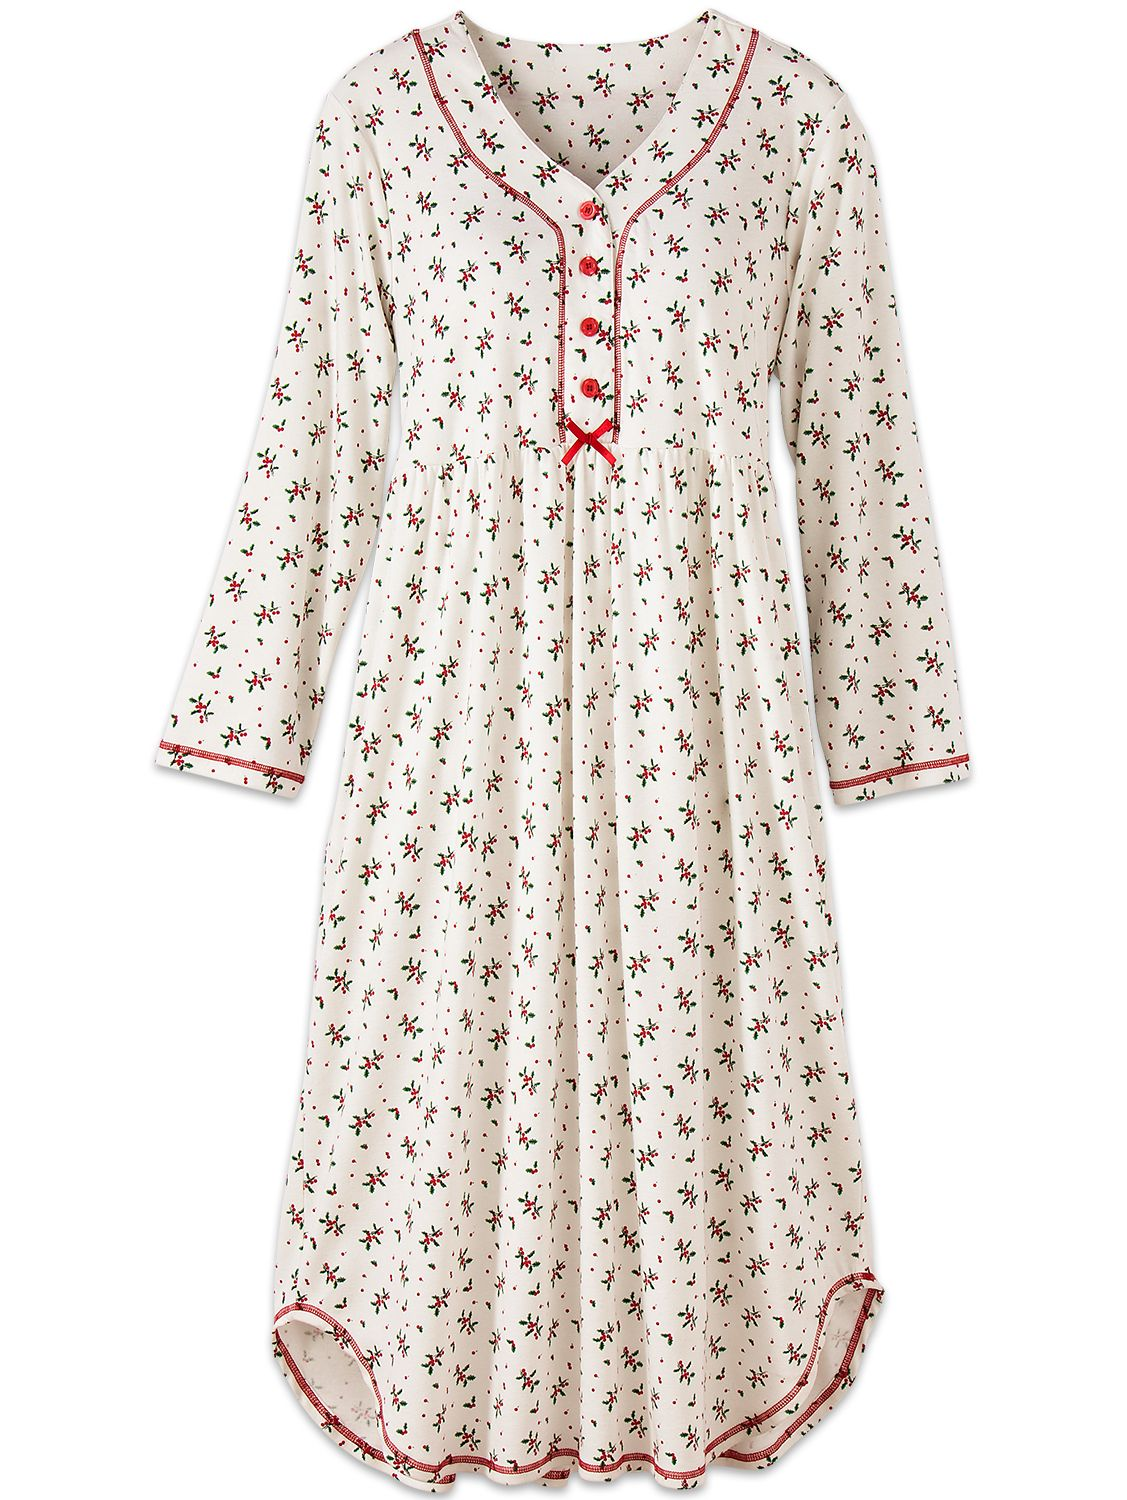 9abb5b8186 Cotton Knit Nightgown With Holly Berry Print   Holiday Nightdress